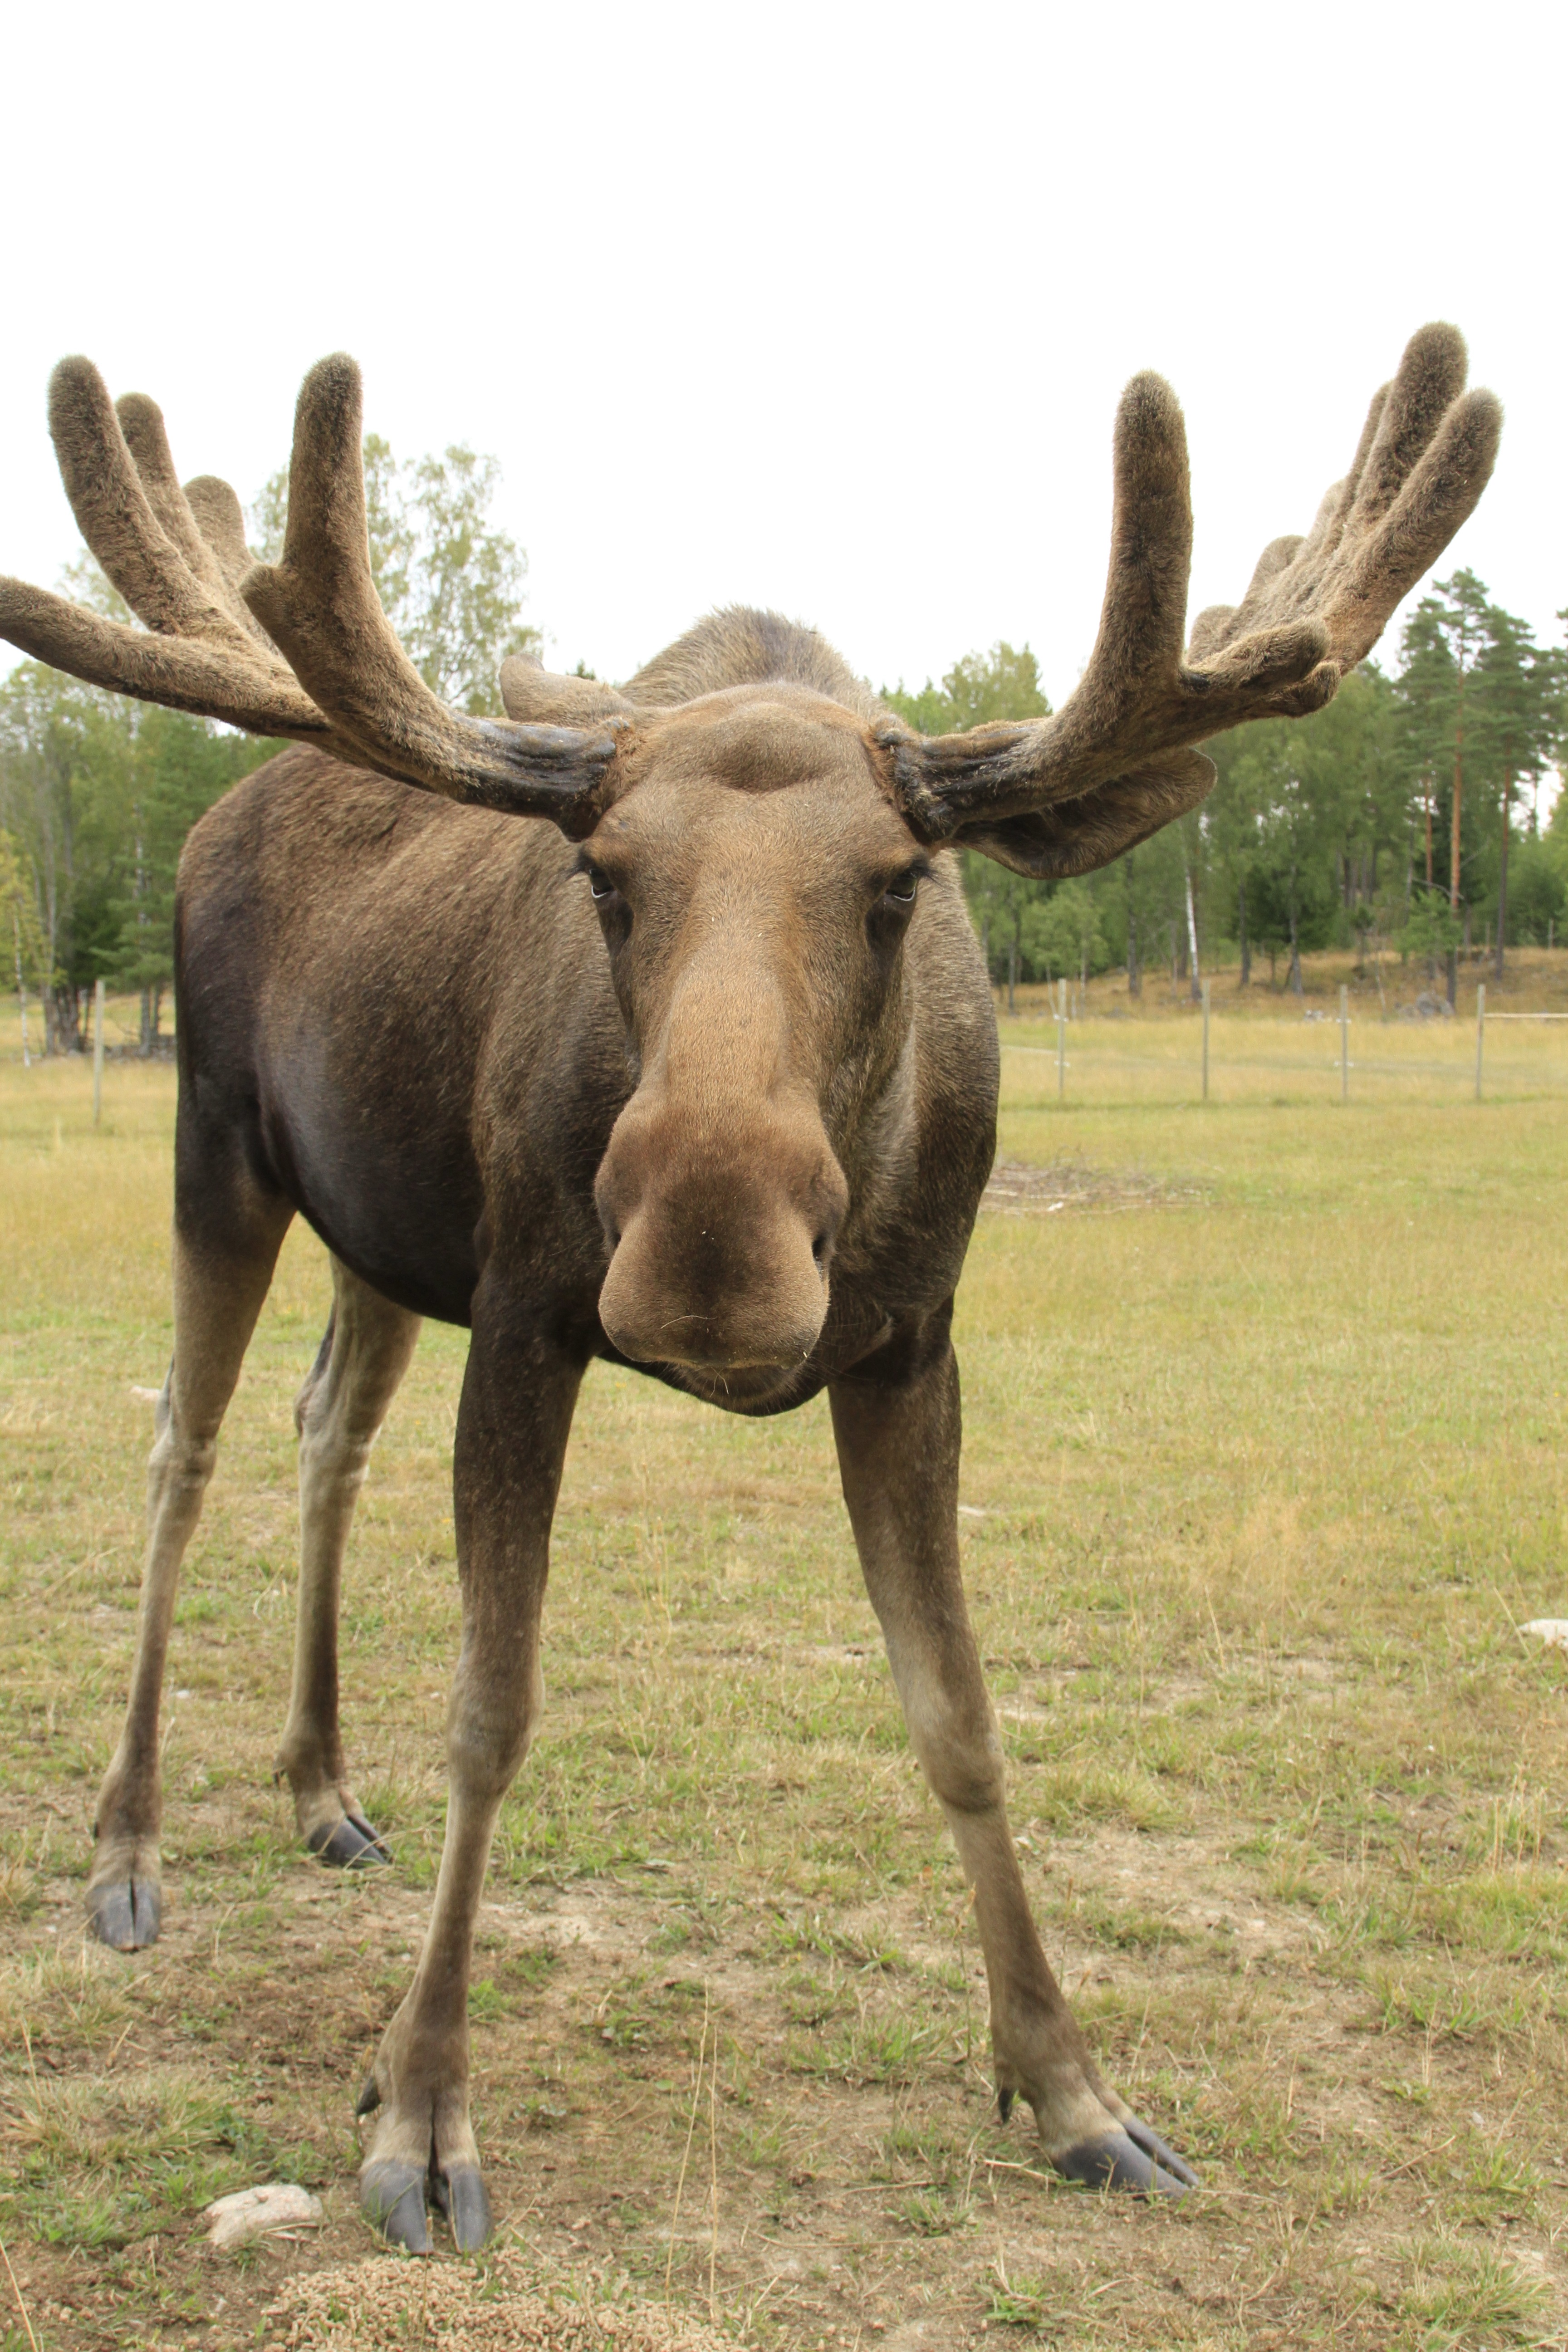 A closeup of a moose looking into the camera